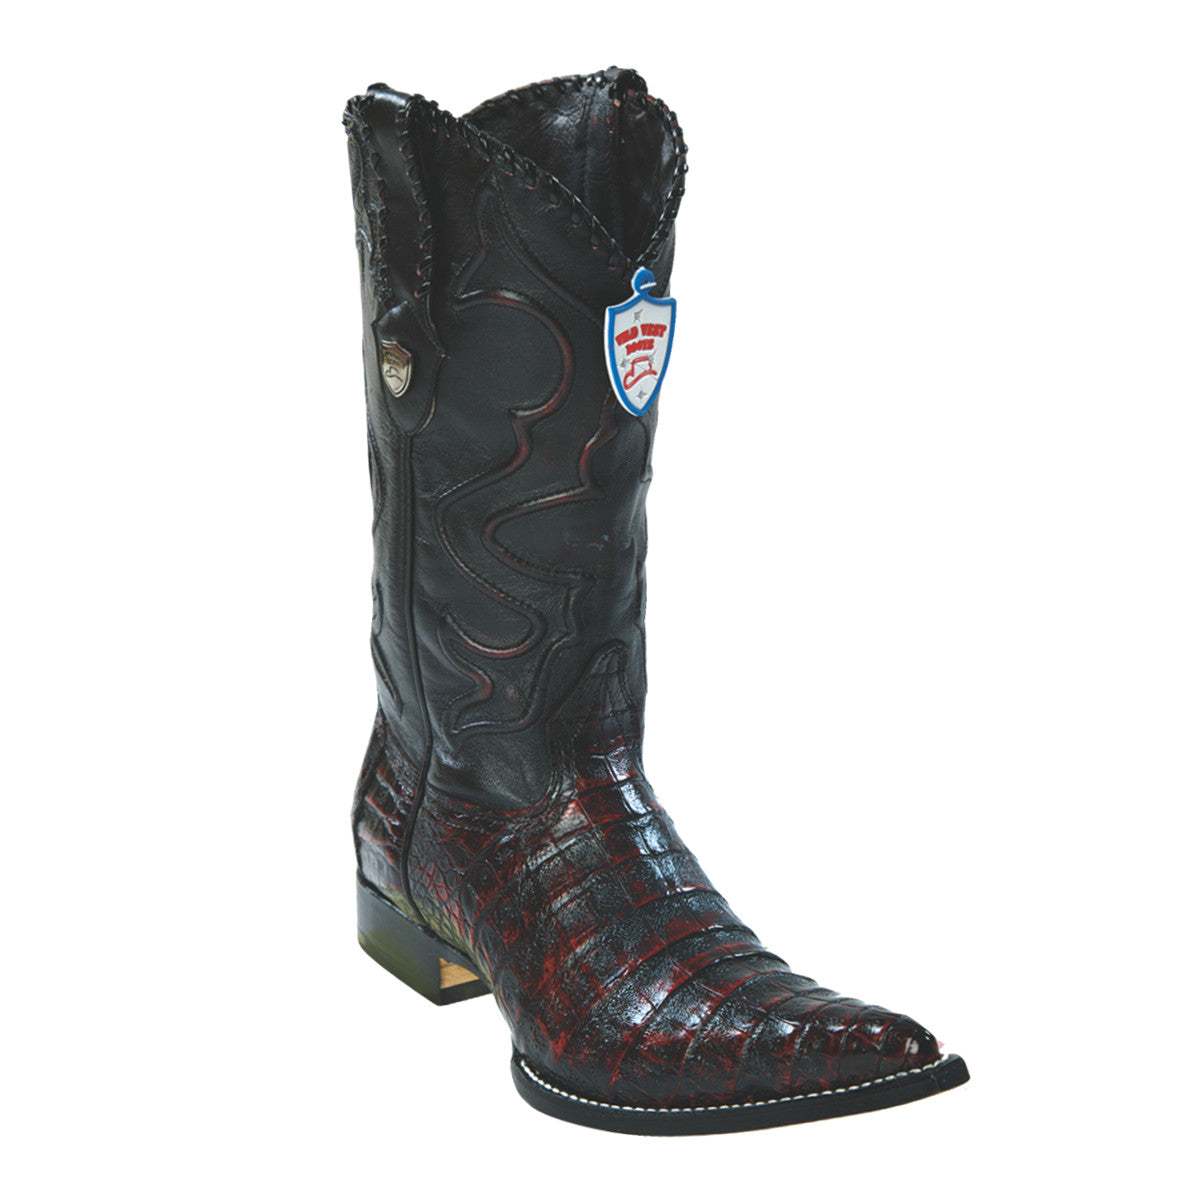 Wild West Boots H95 3x Toe Caiman Belly - Black Cherry